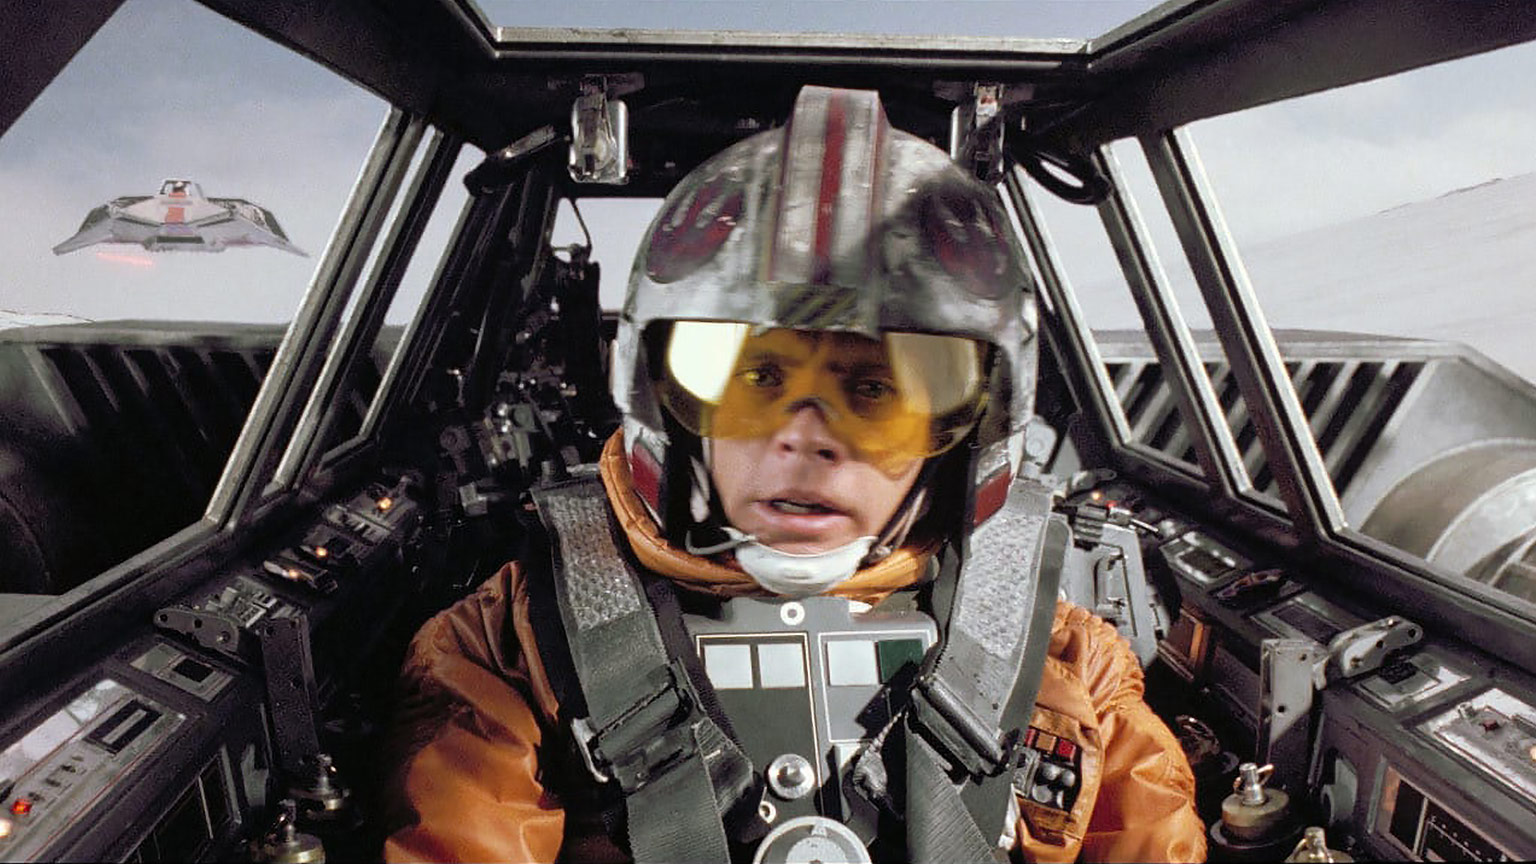 Luke at the Battle of Hoth